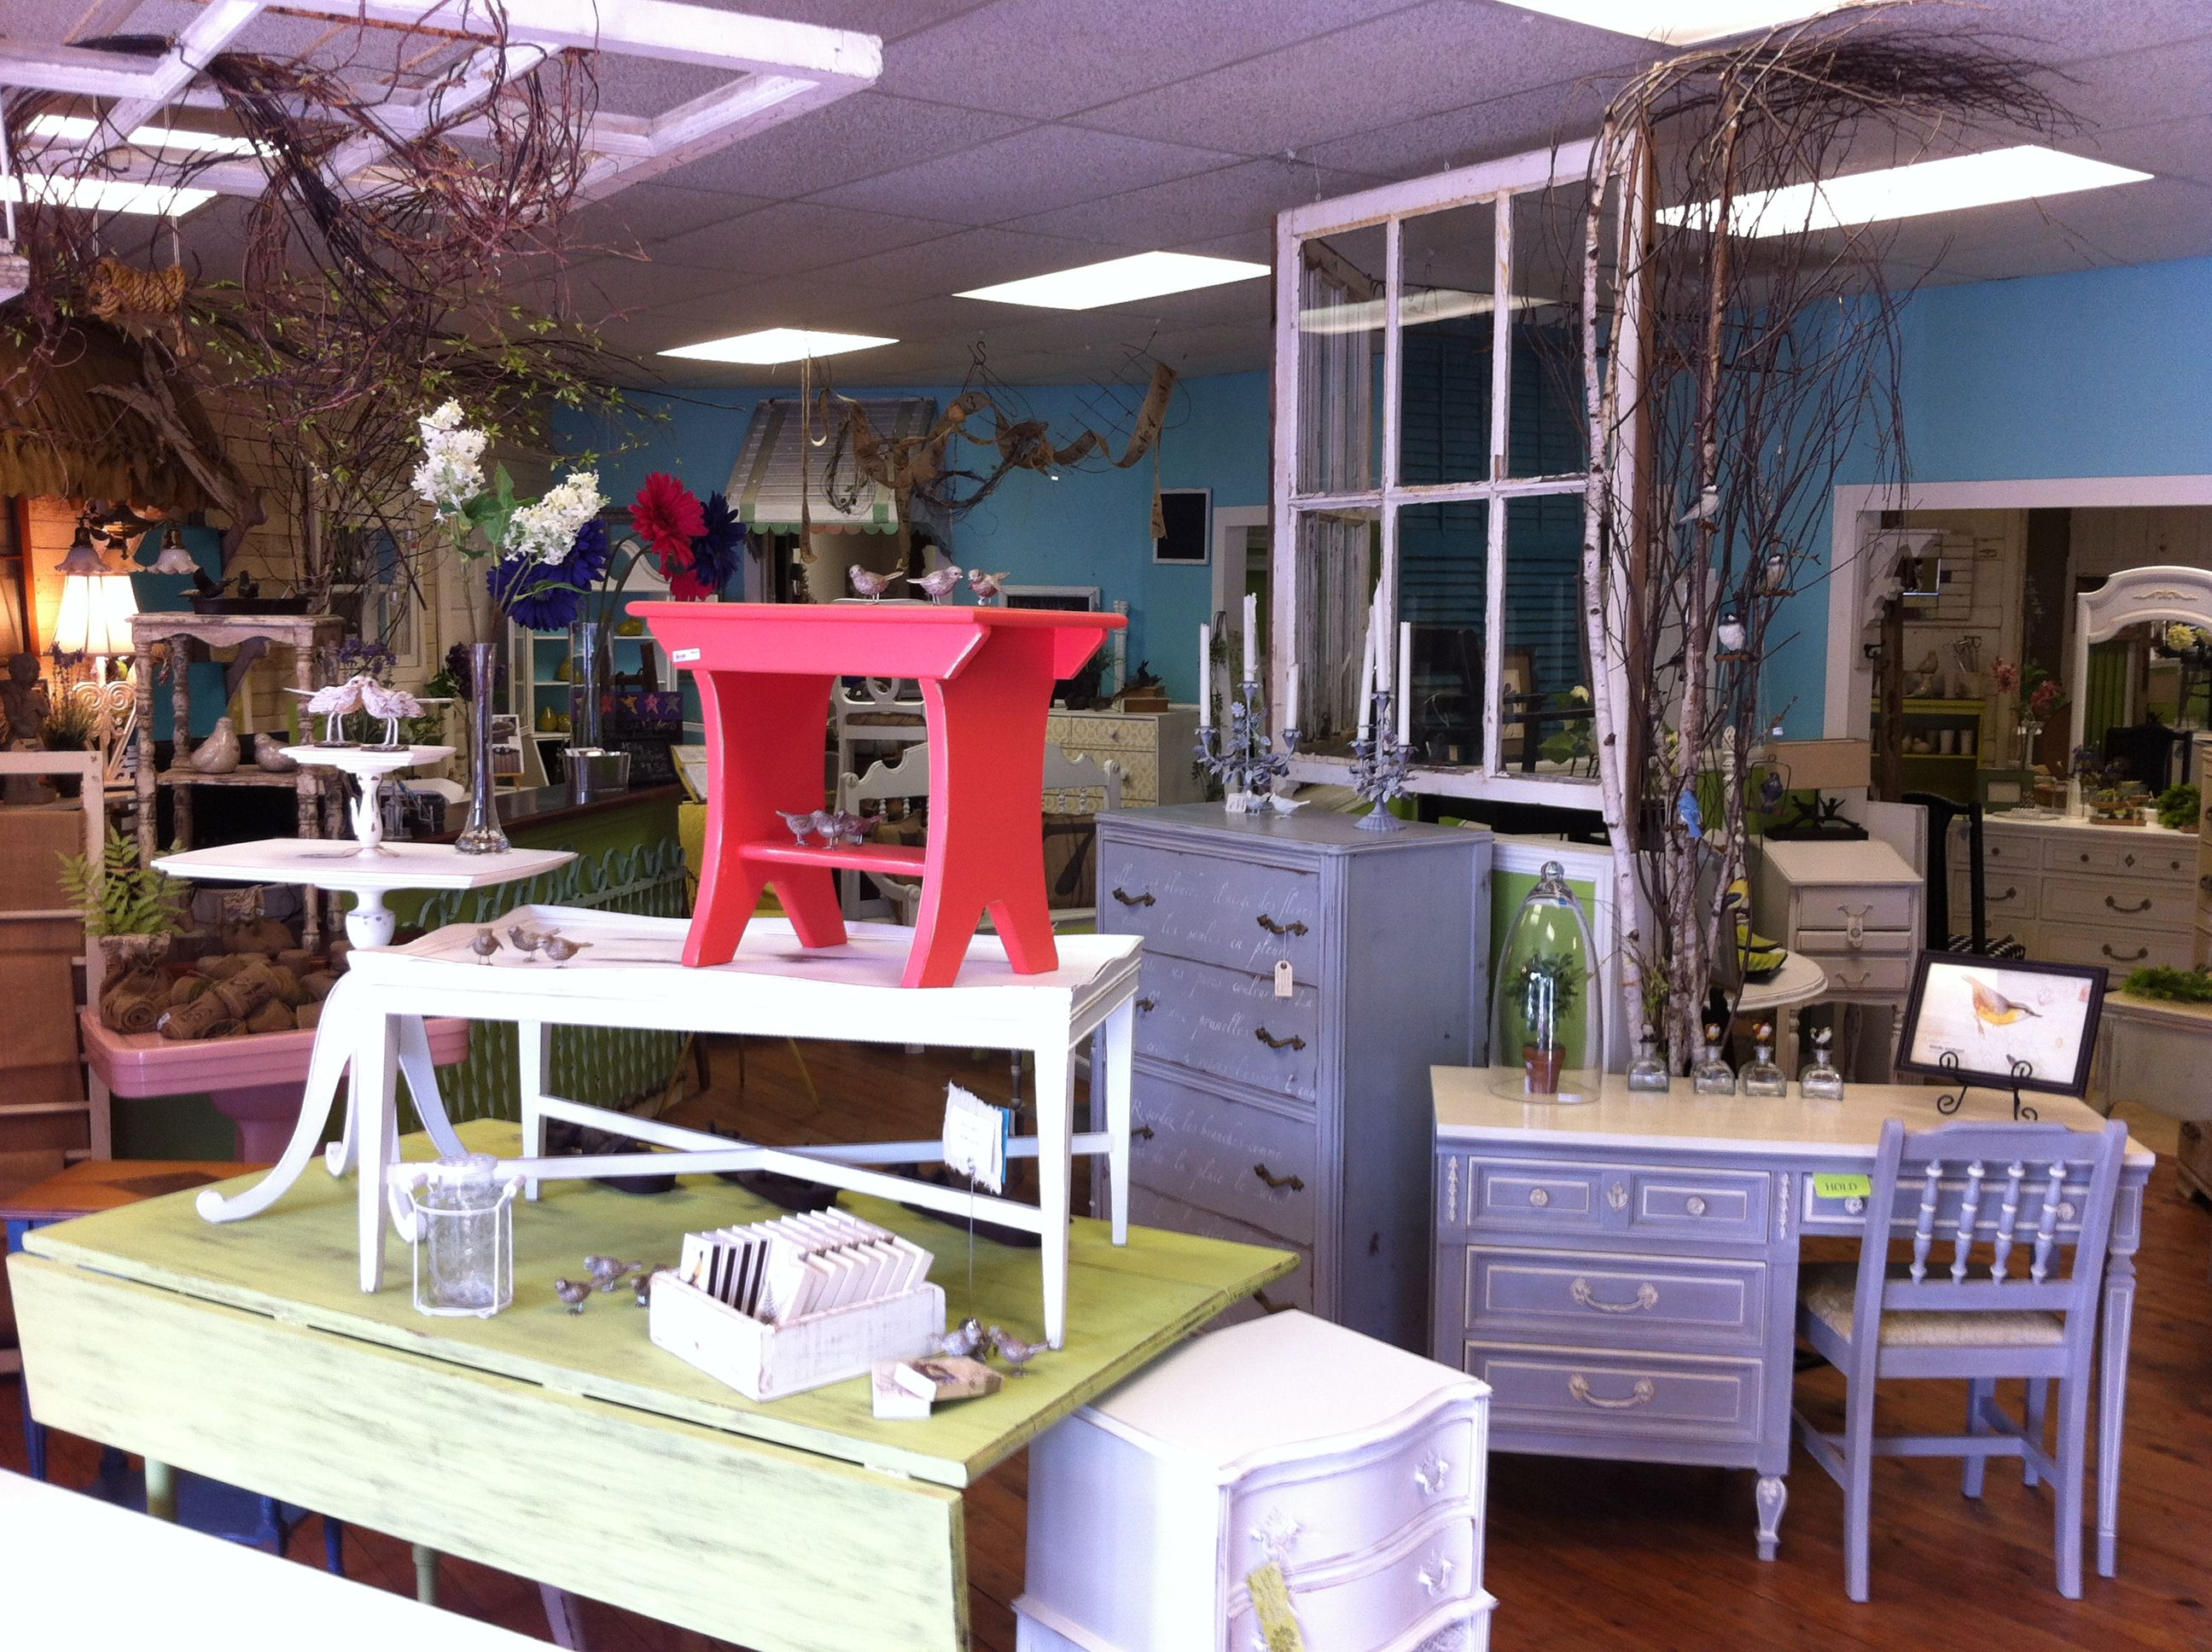 Vintage. Eclectic. New and used. Furniture & gifts. You can RENT wedding goodies! Vases, chalkboards, lanterns, you name it! Lots to choose from Miss Mandy's in Tallahassee, FL.